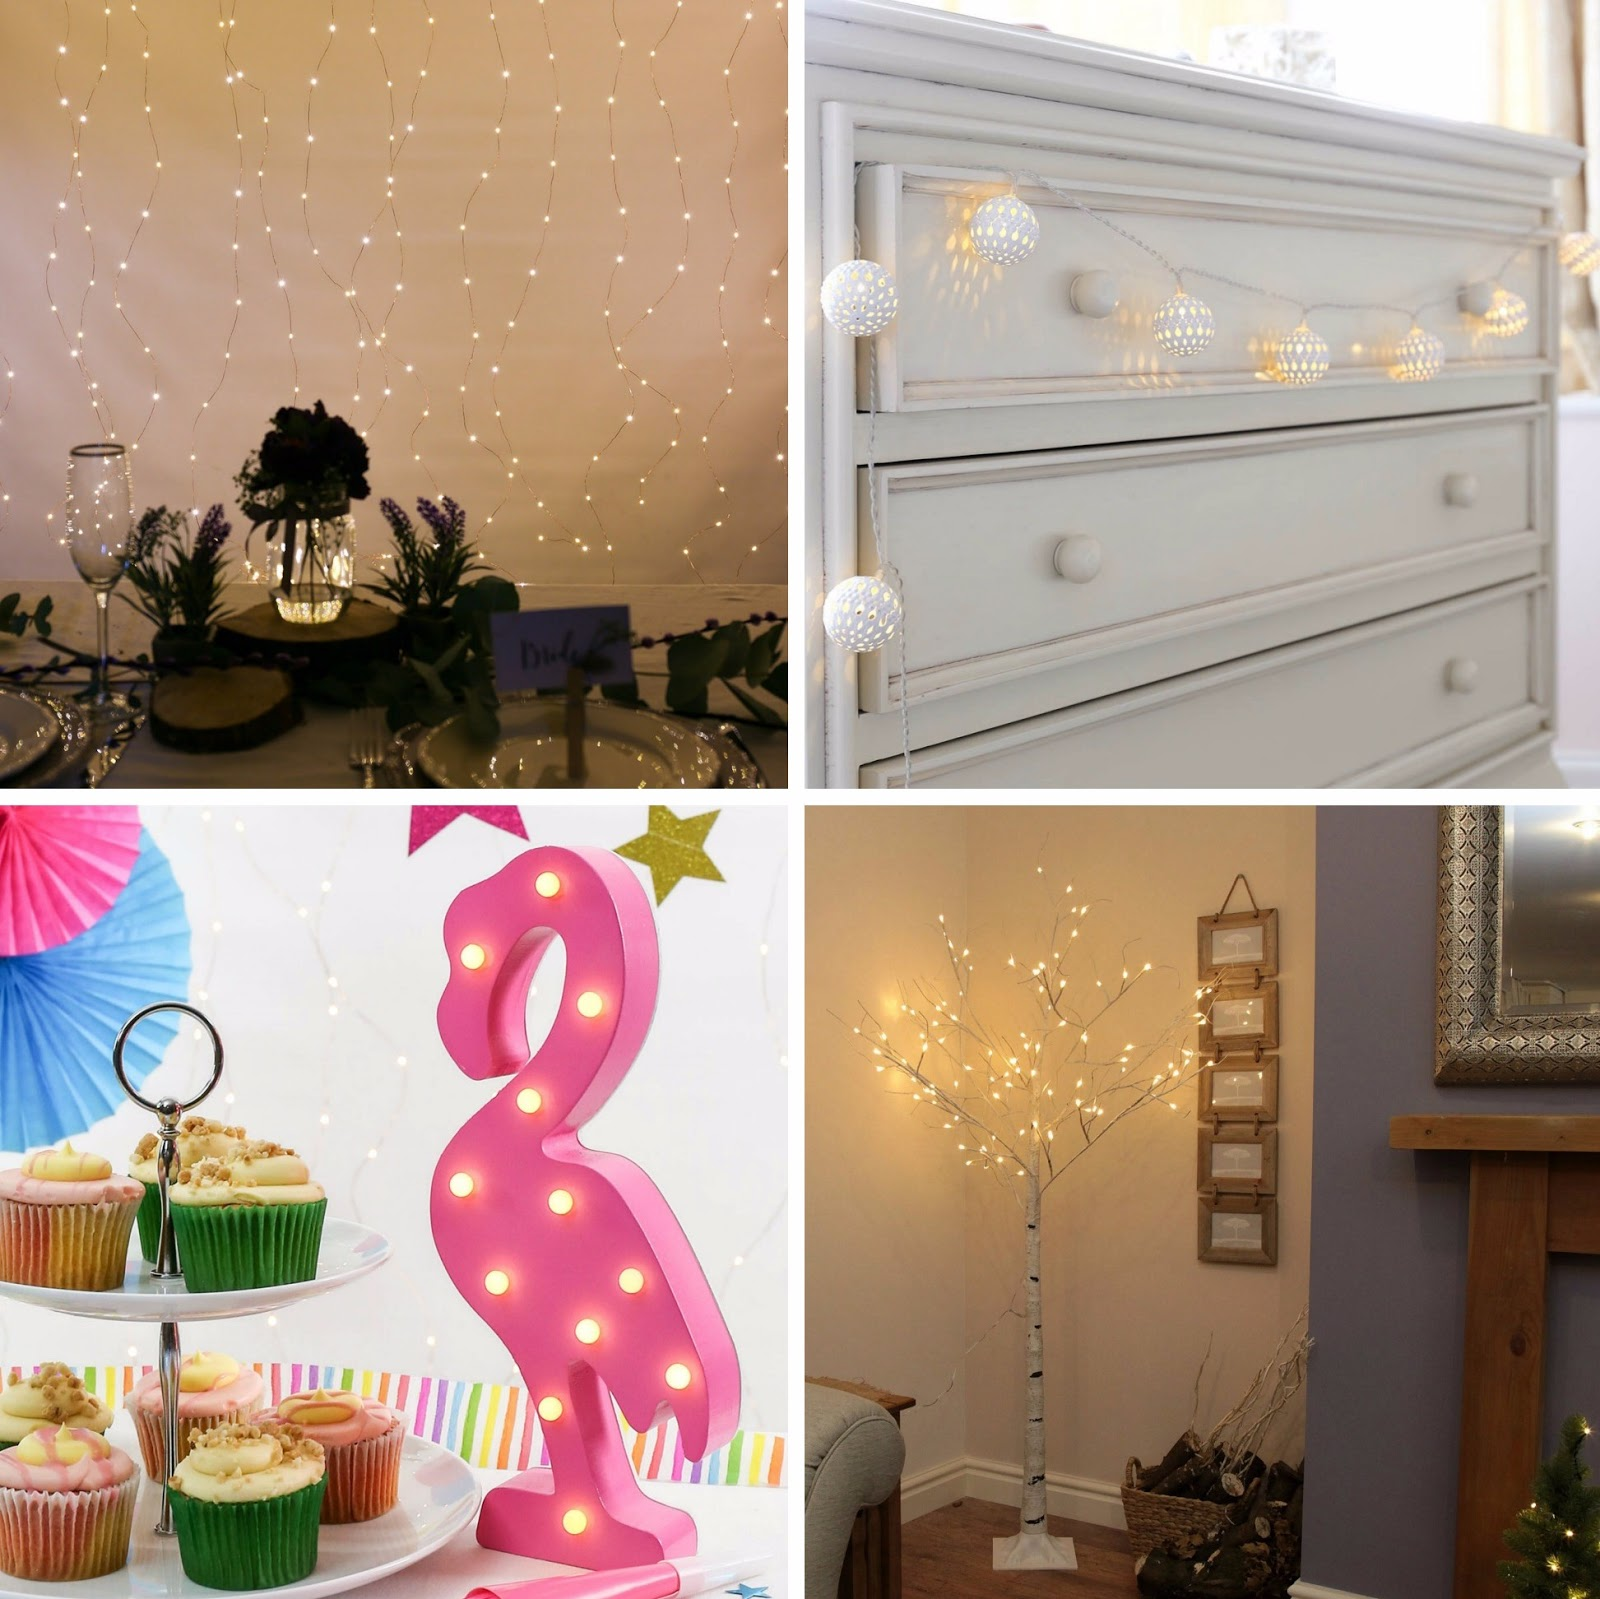 Formidable Joy | Formidable Joy Blog | Festive Lights | Home | The best lights for bloggers